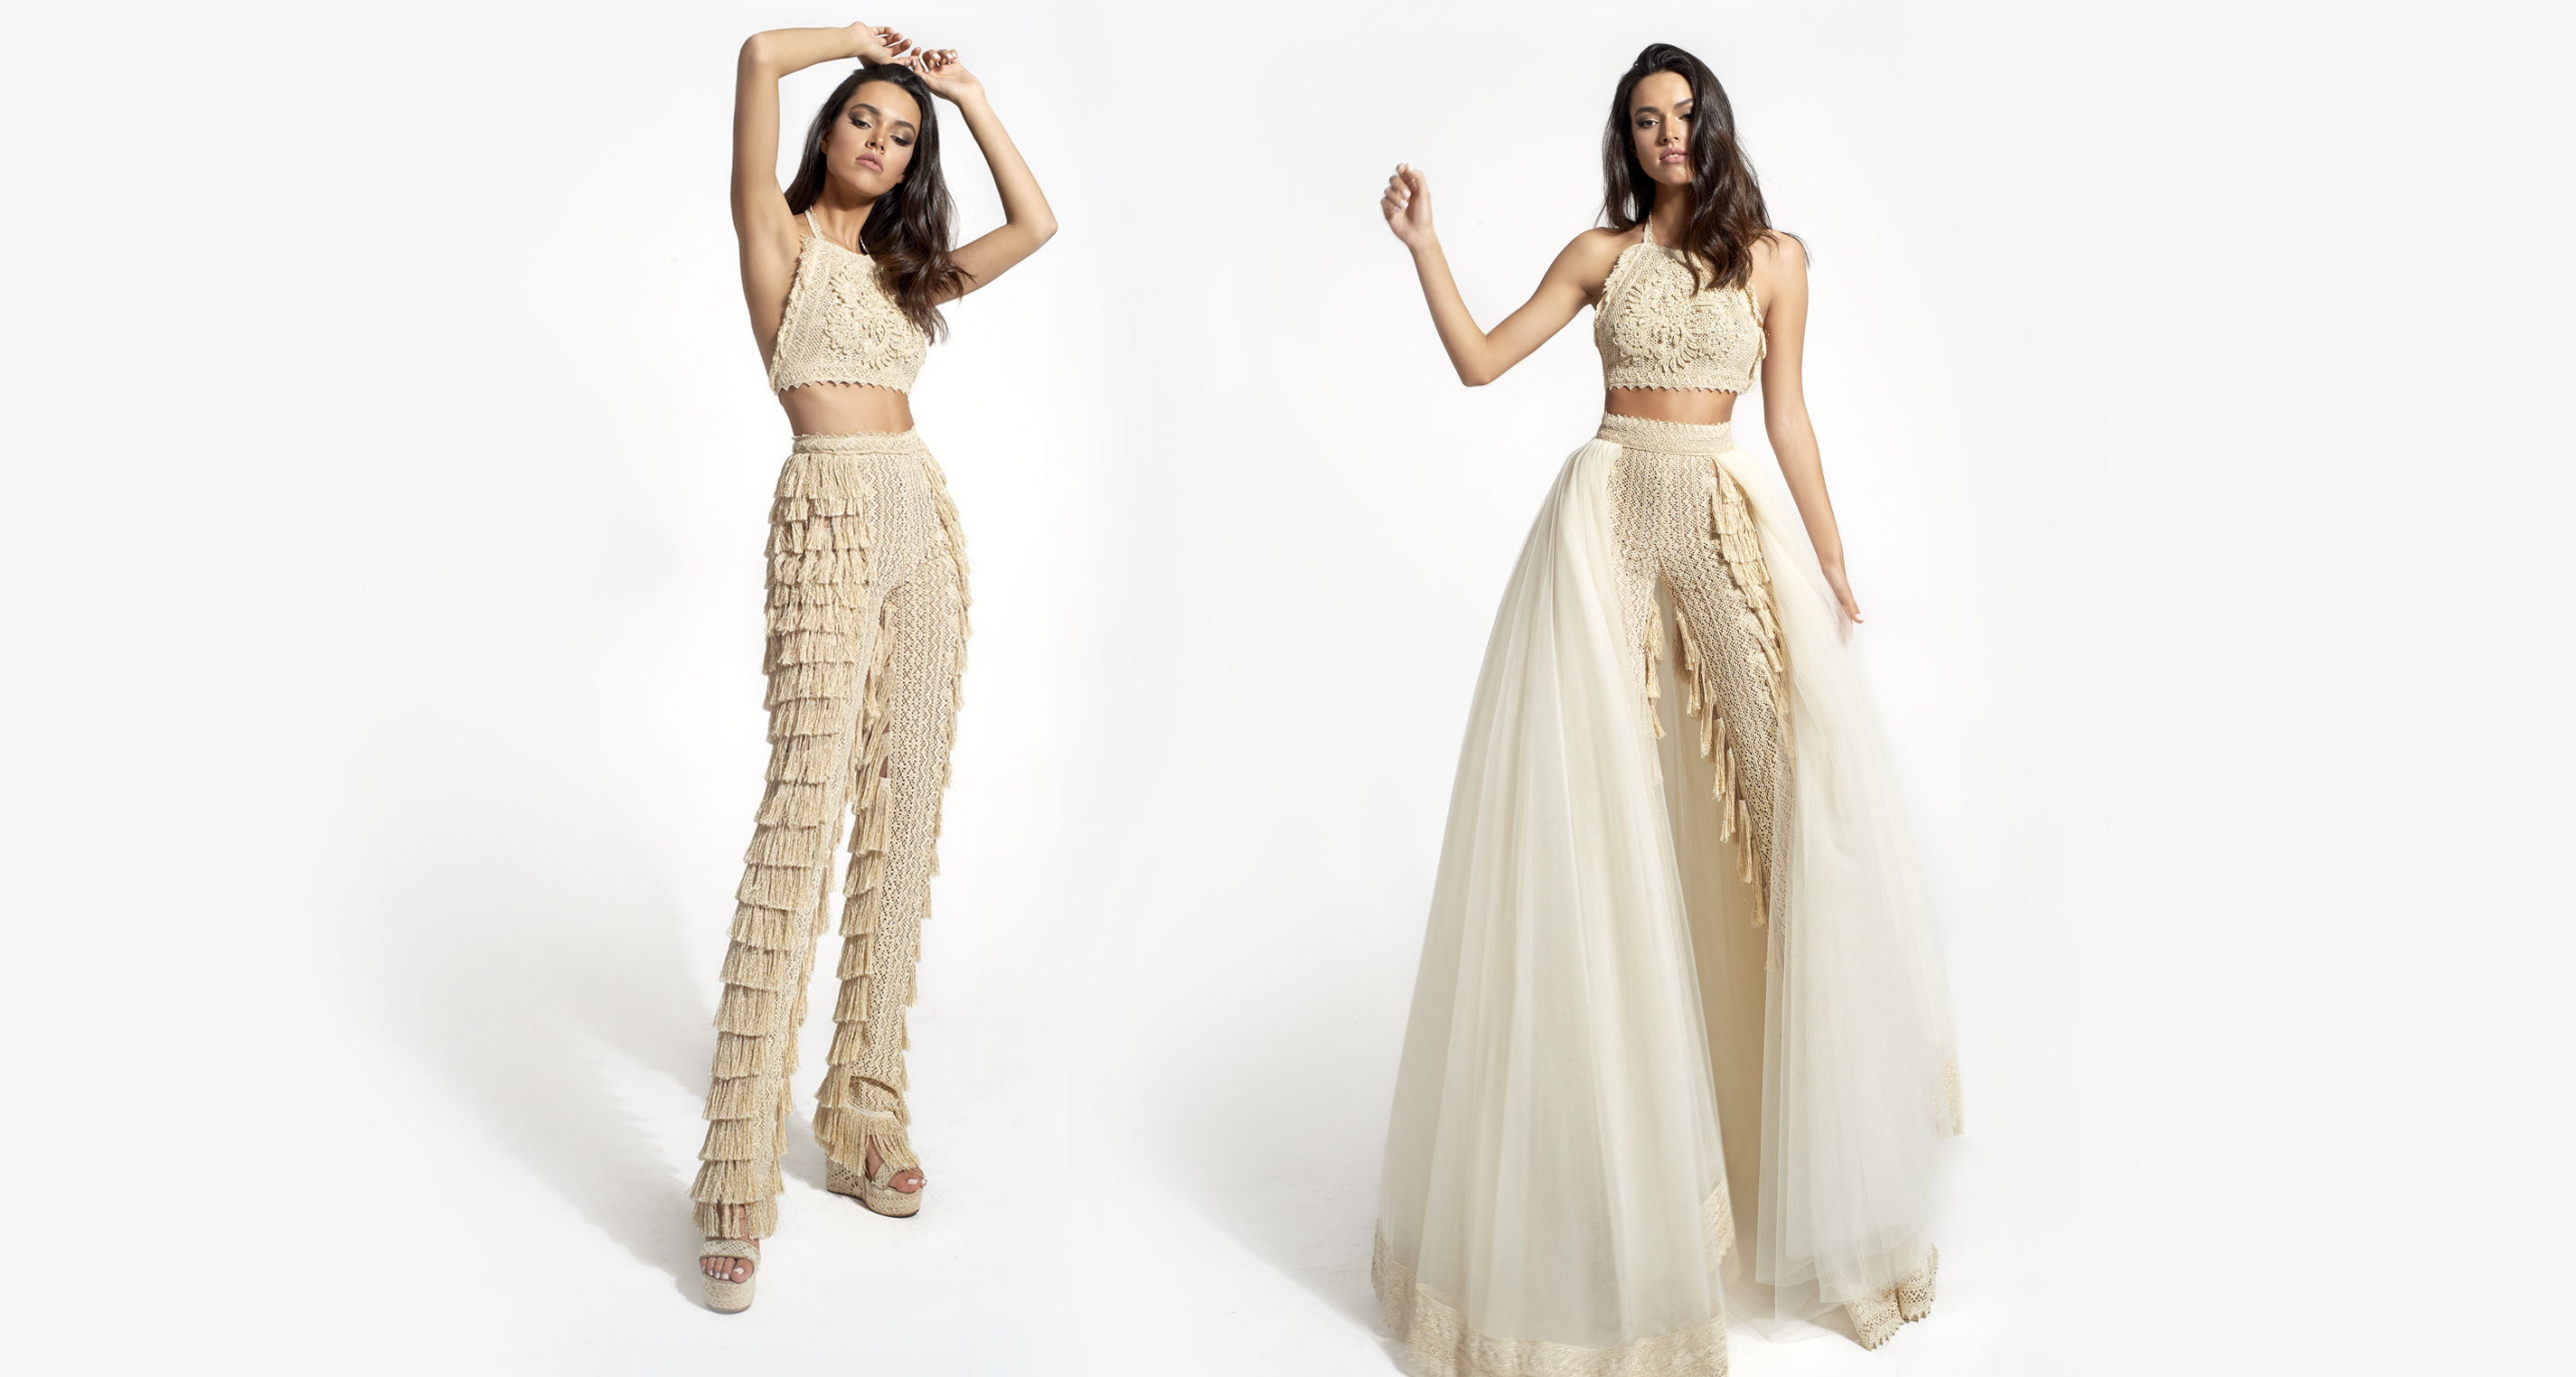 Ophelia Opulence & Fringe Pants wedding dress from  Hellenic Vintage Opulence Collection